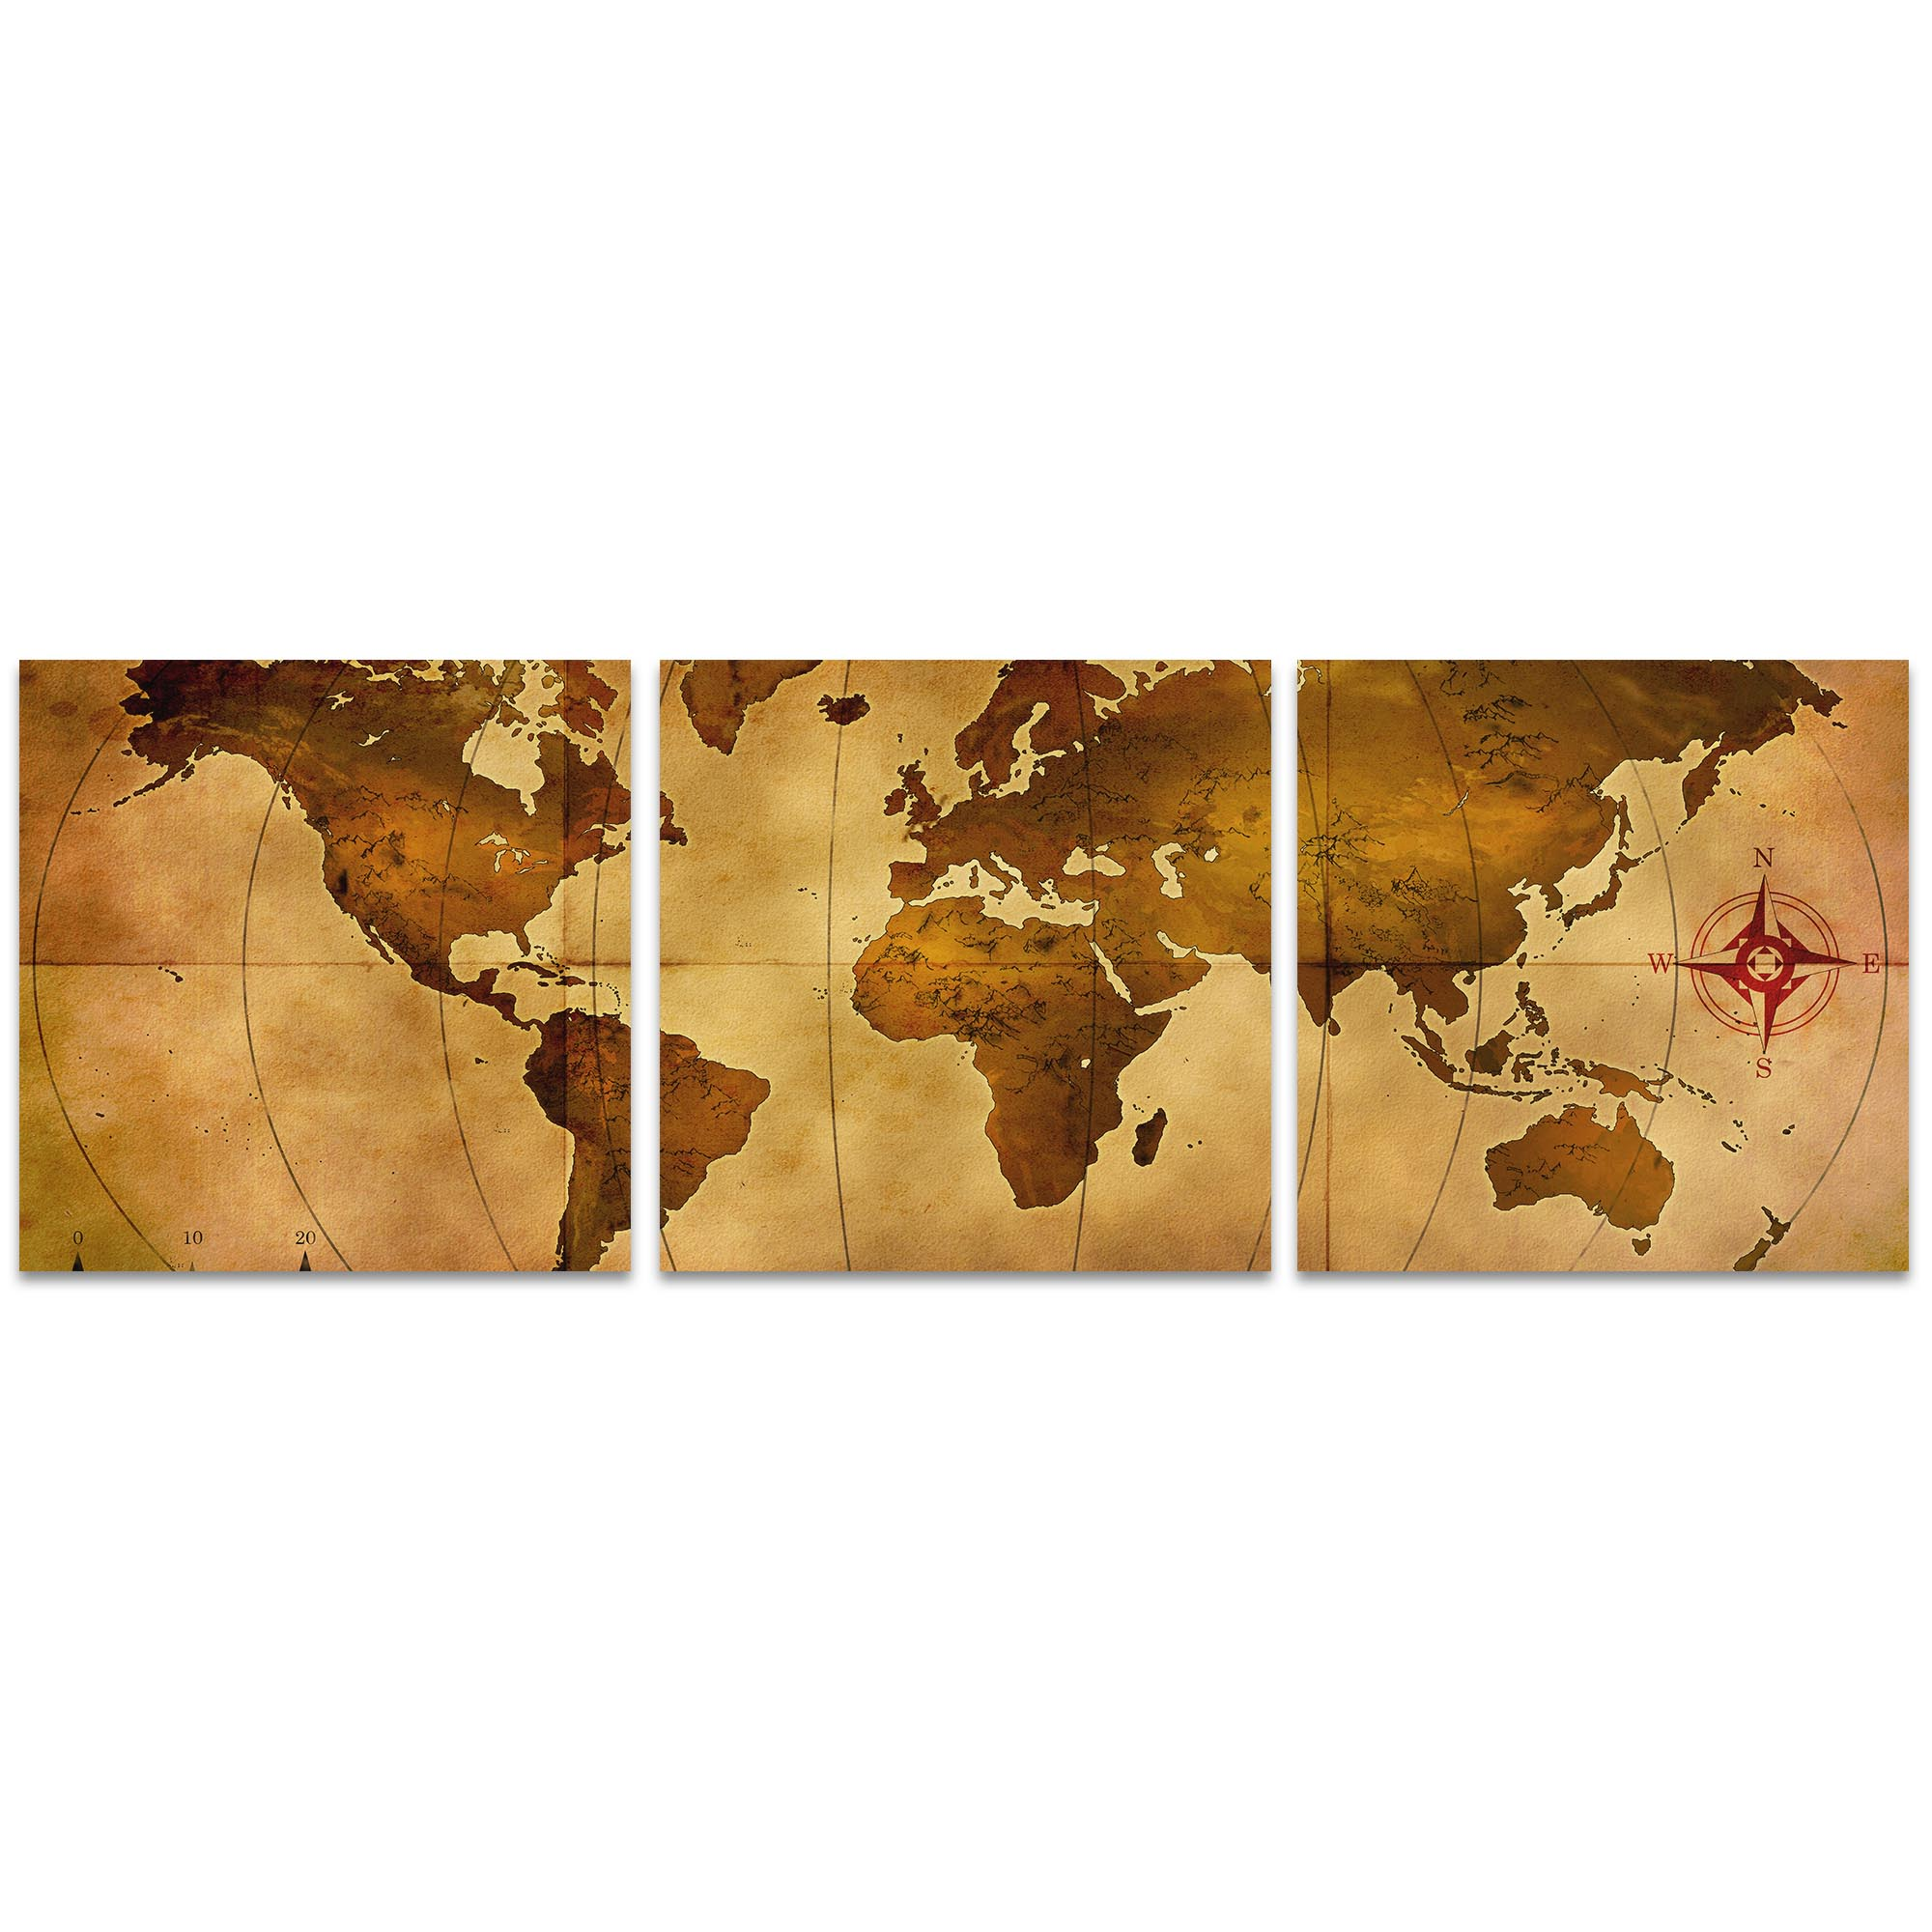 Old World Map Triptych 38x12in. Metal or Acrylic Colonial Decor